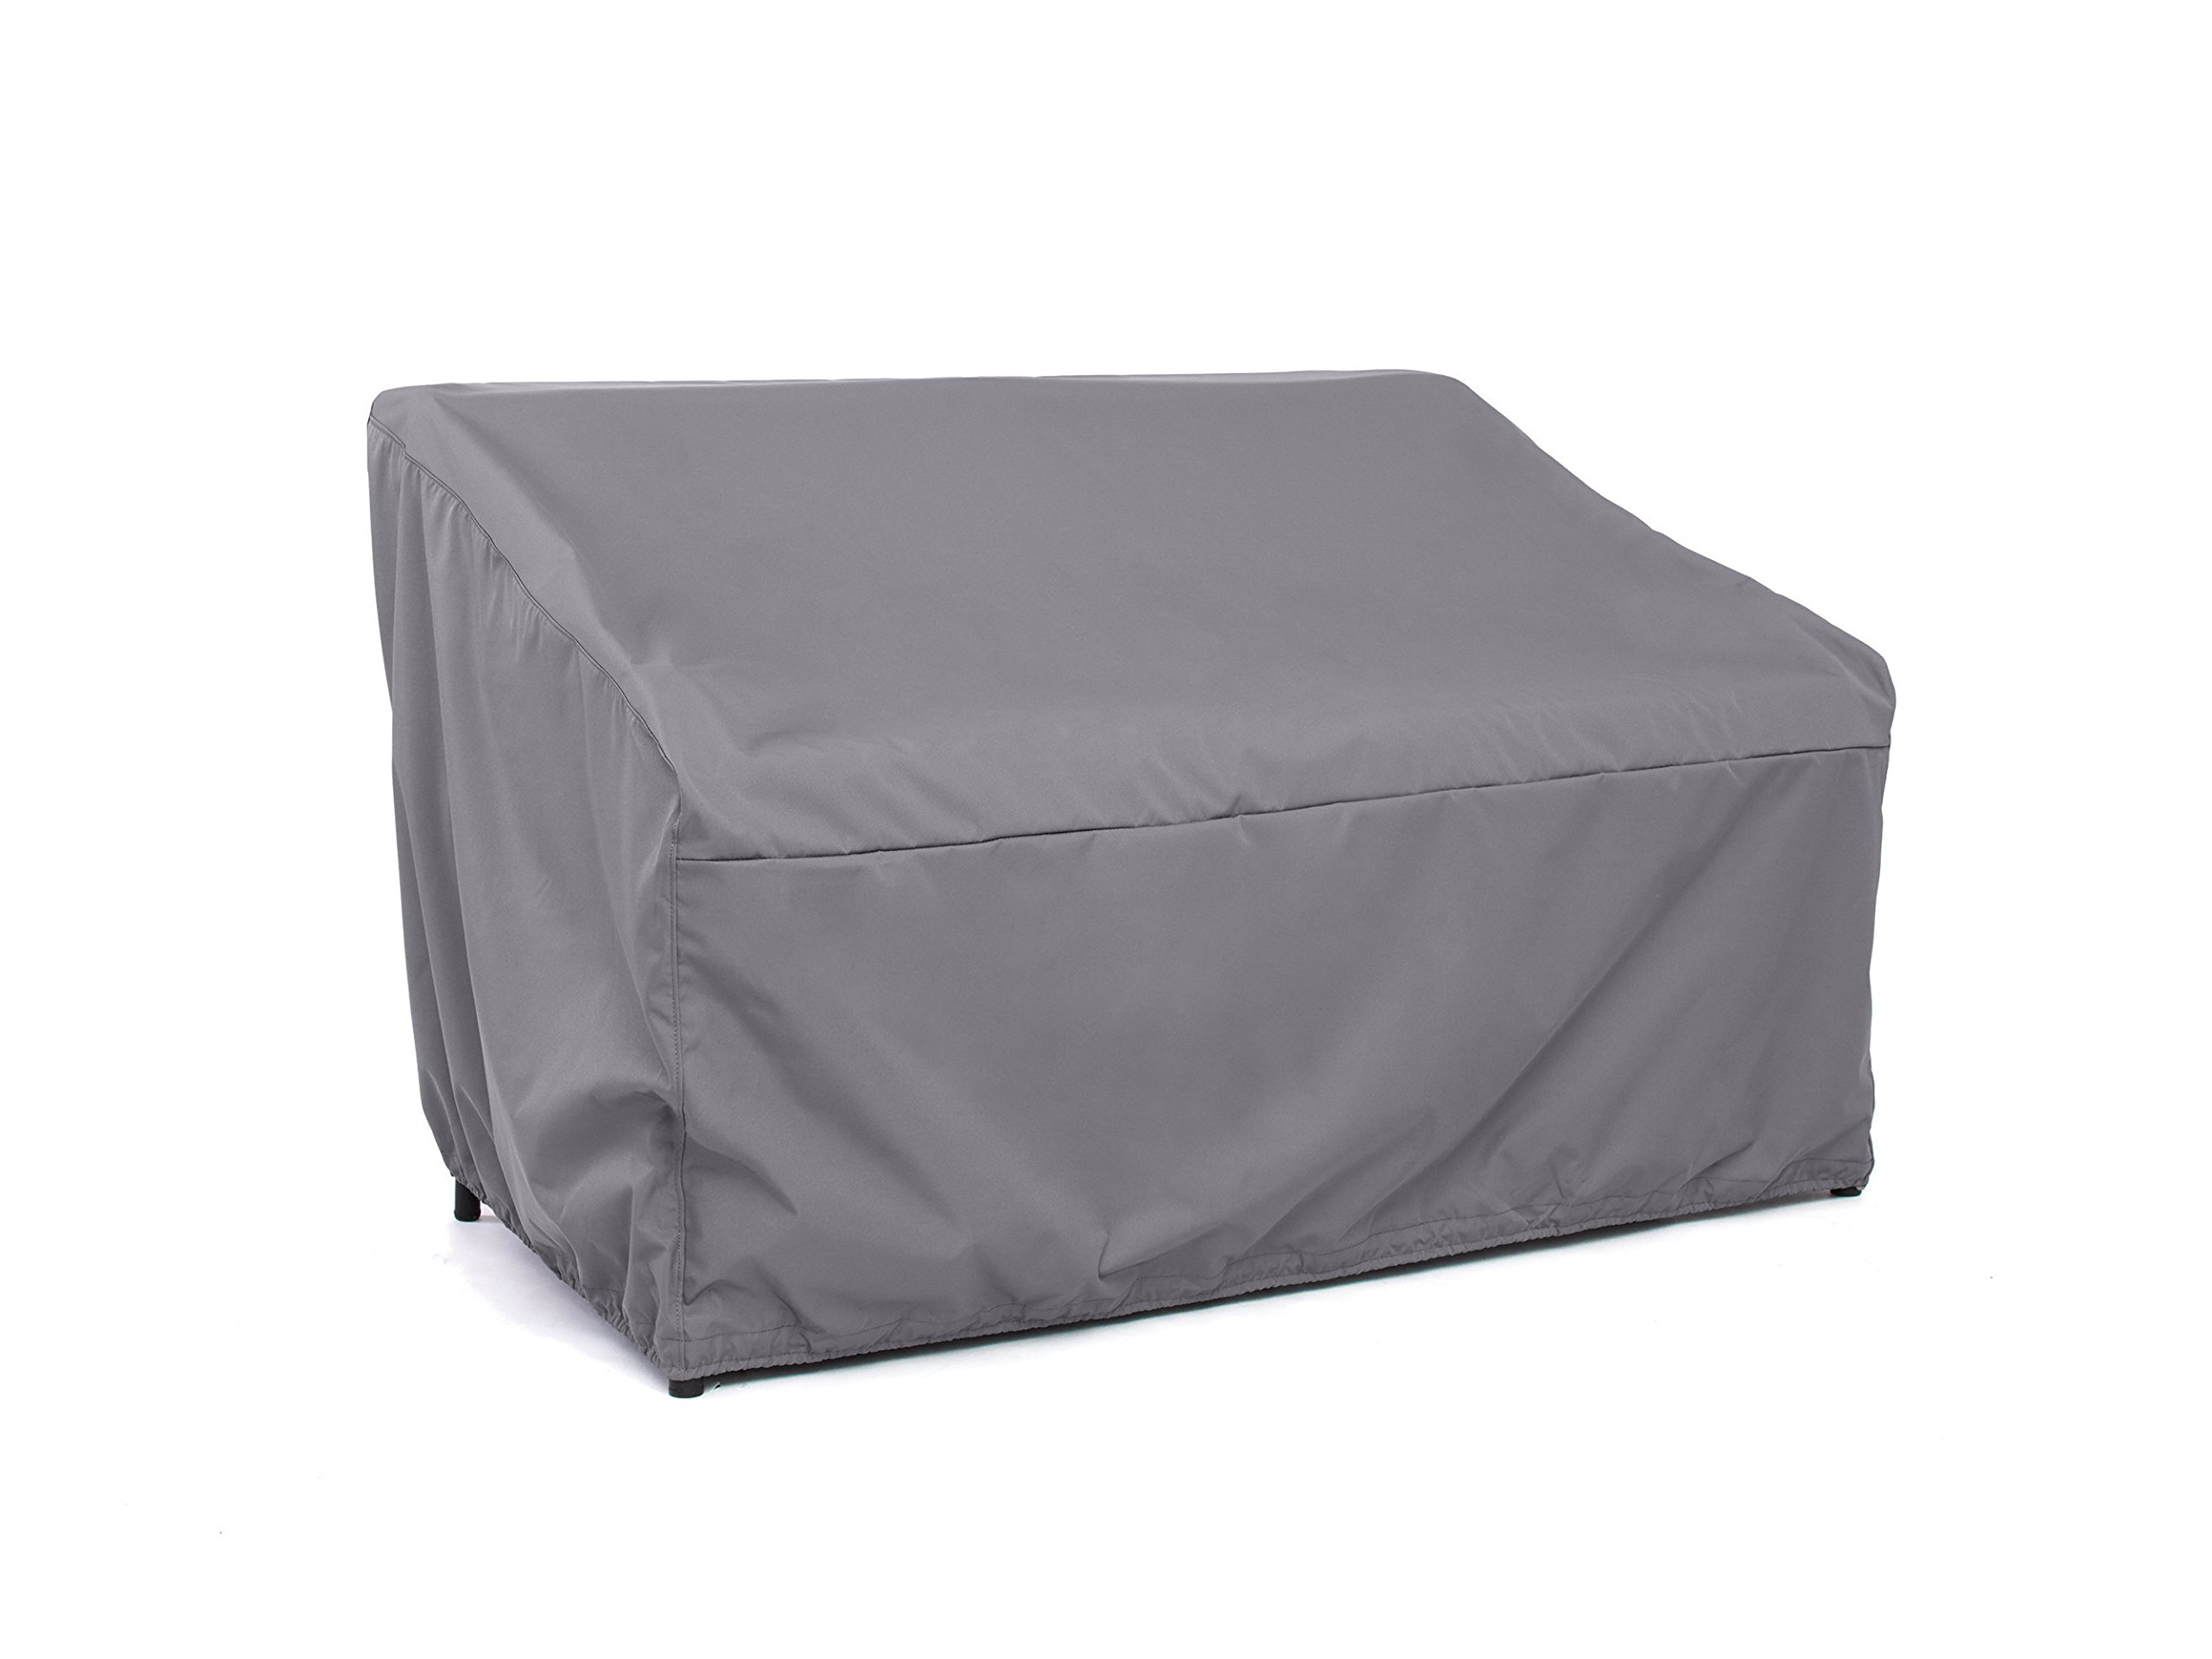 Covermates - Outdoor Patio Glider Cover - 52W x 32D x 34H - Elite Collection - 3 YR Warranty - Year Around Protection - Charcoal by Covermates (Image #1)